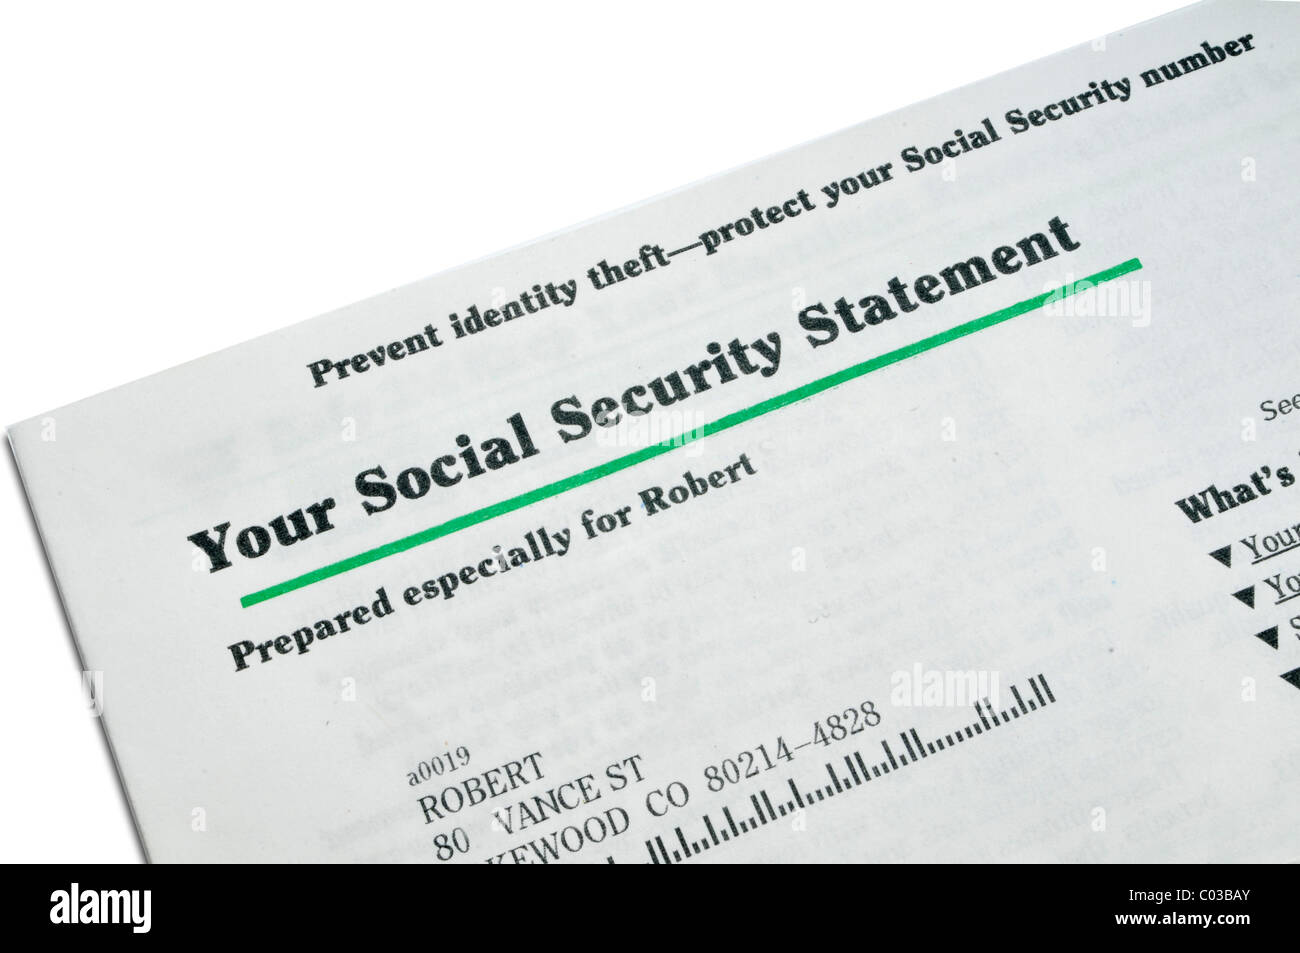 social security document dloct up - Stock Image